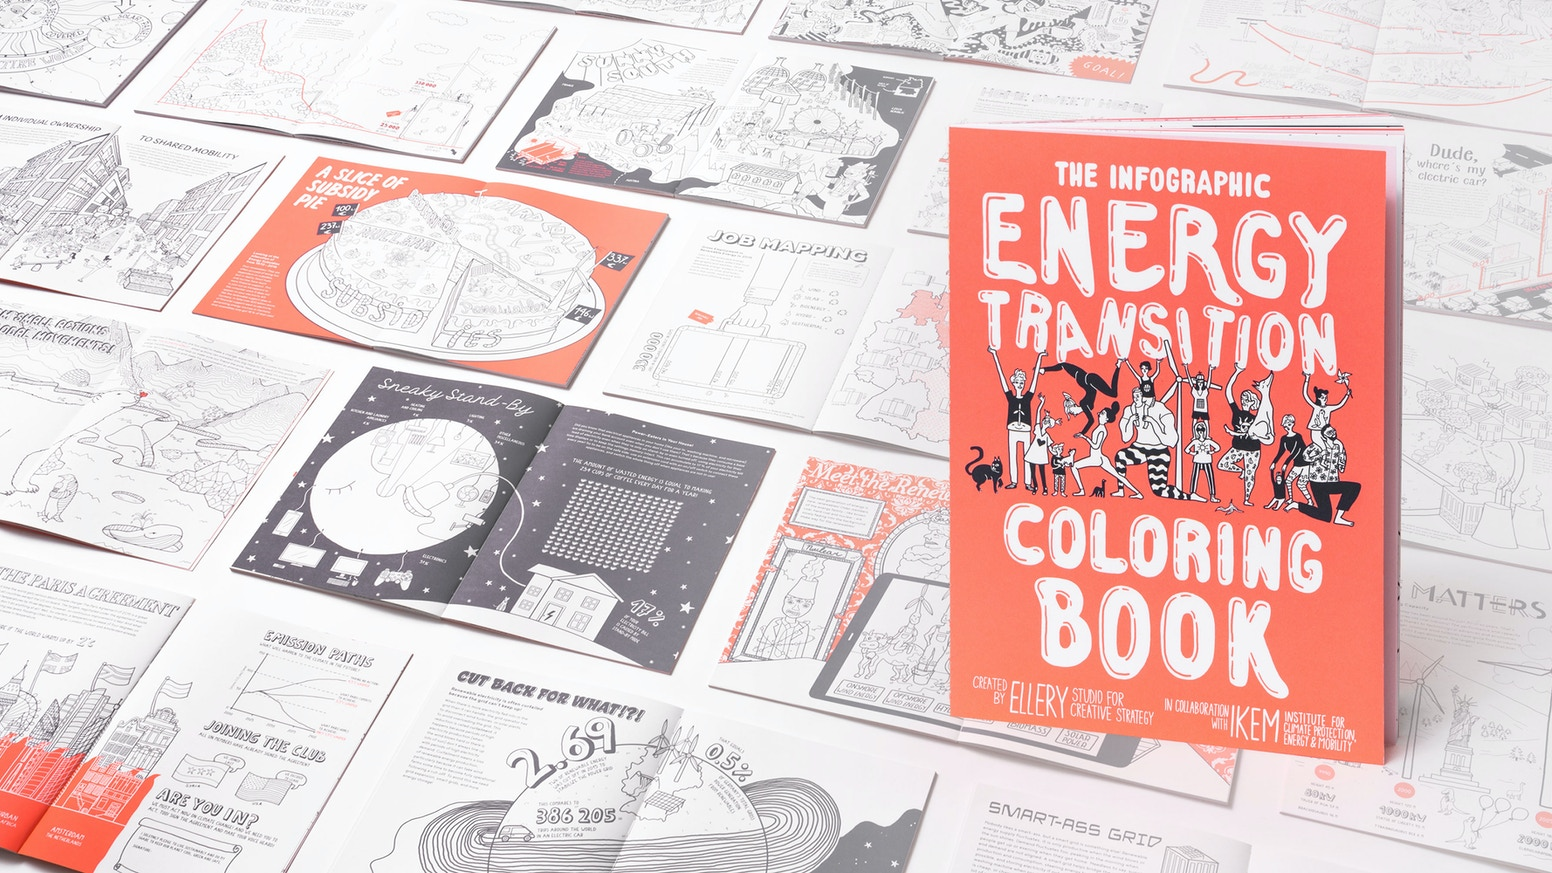 The Infographic Energy Transition Coloring Book By Ellery Studio And Ikem Kickstarter